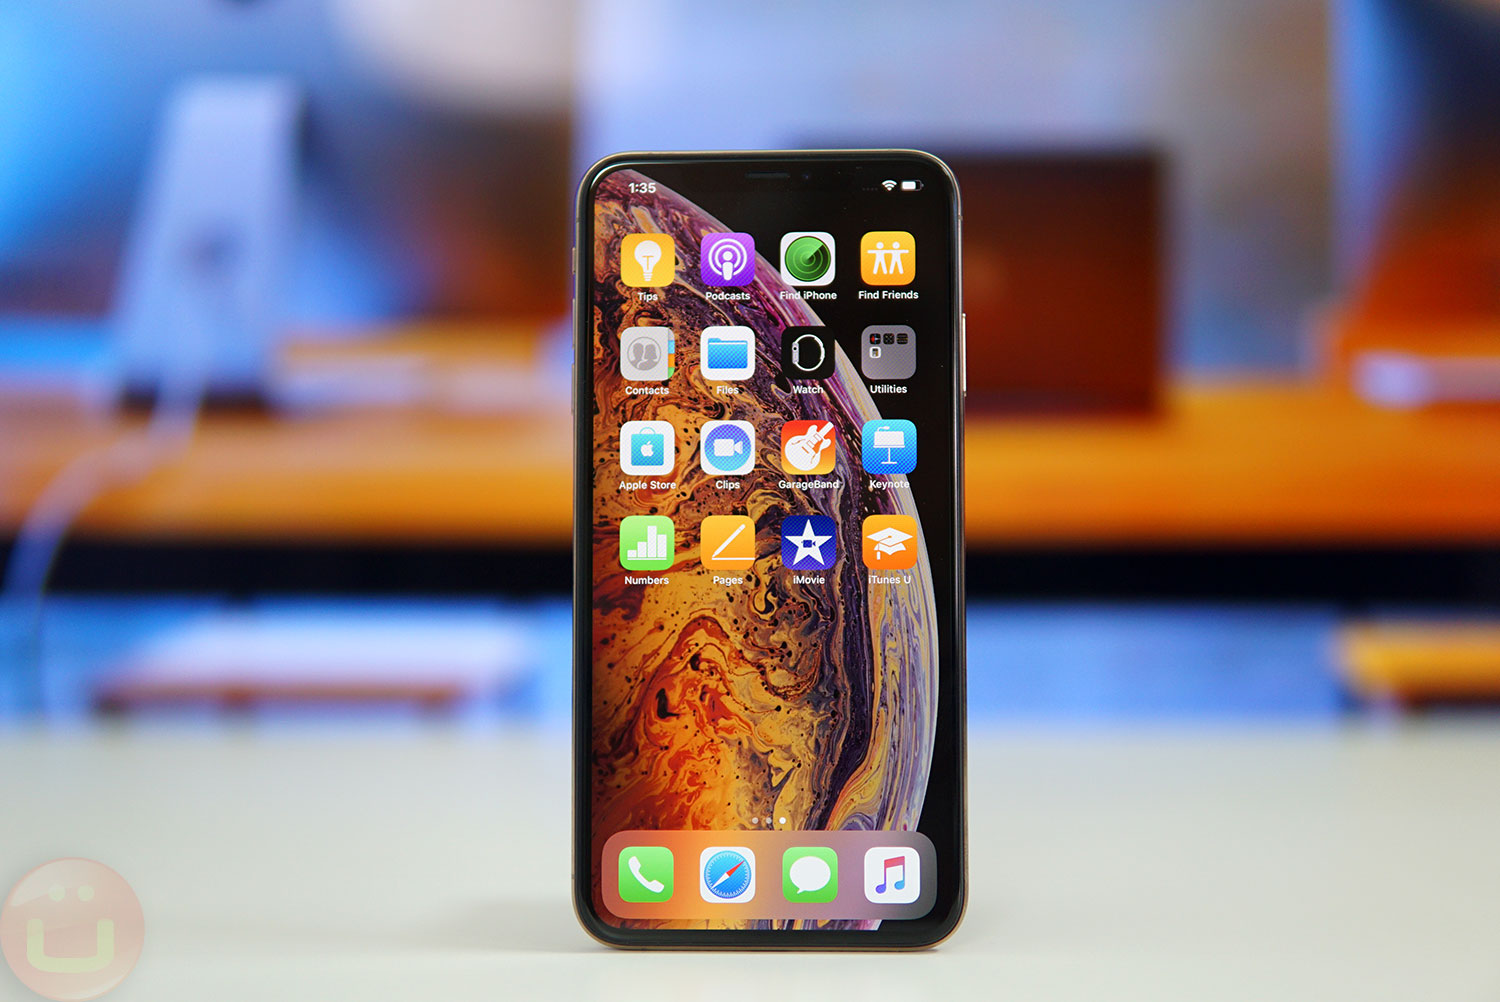 2020 iPhones Will Introduce An All New Design, 5G, Camera Improvements